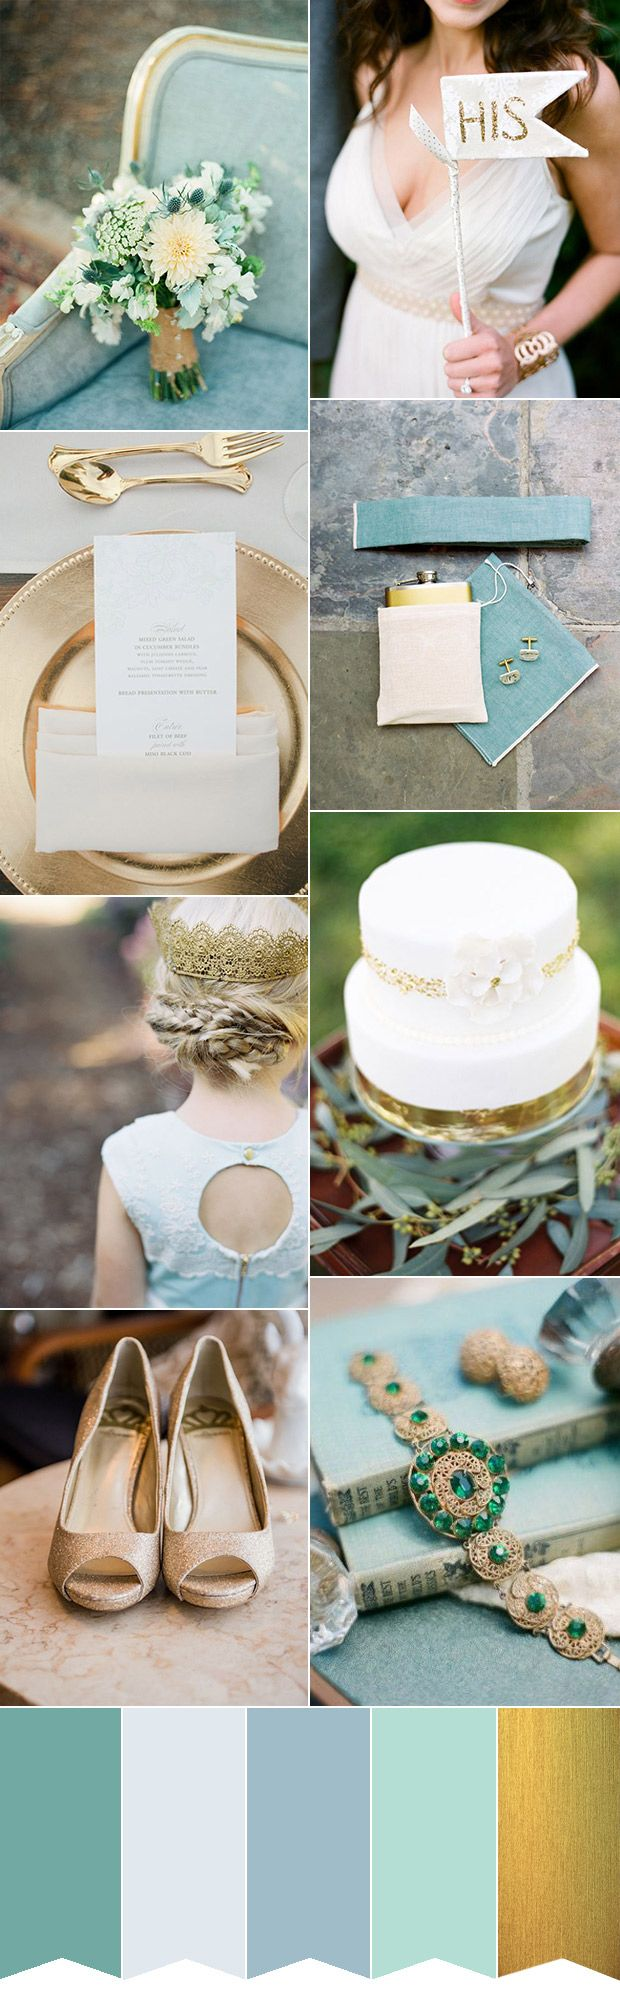 Combining gold, soft duck egg blue, teal and a little glitter you'll love this elegant and ethereal wedding color palette, perfect for late summer weddings.